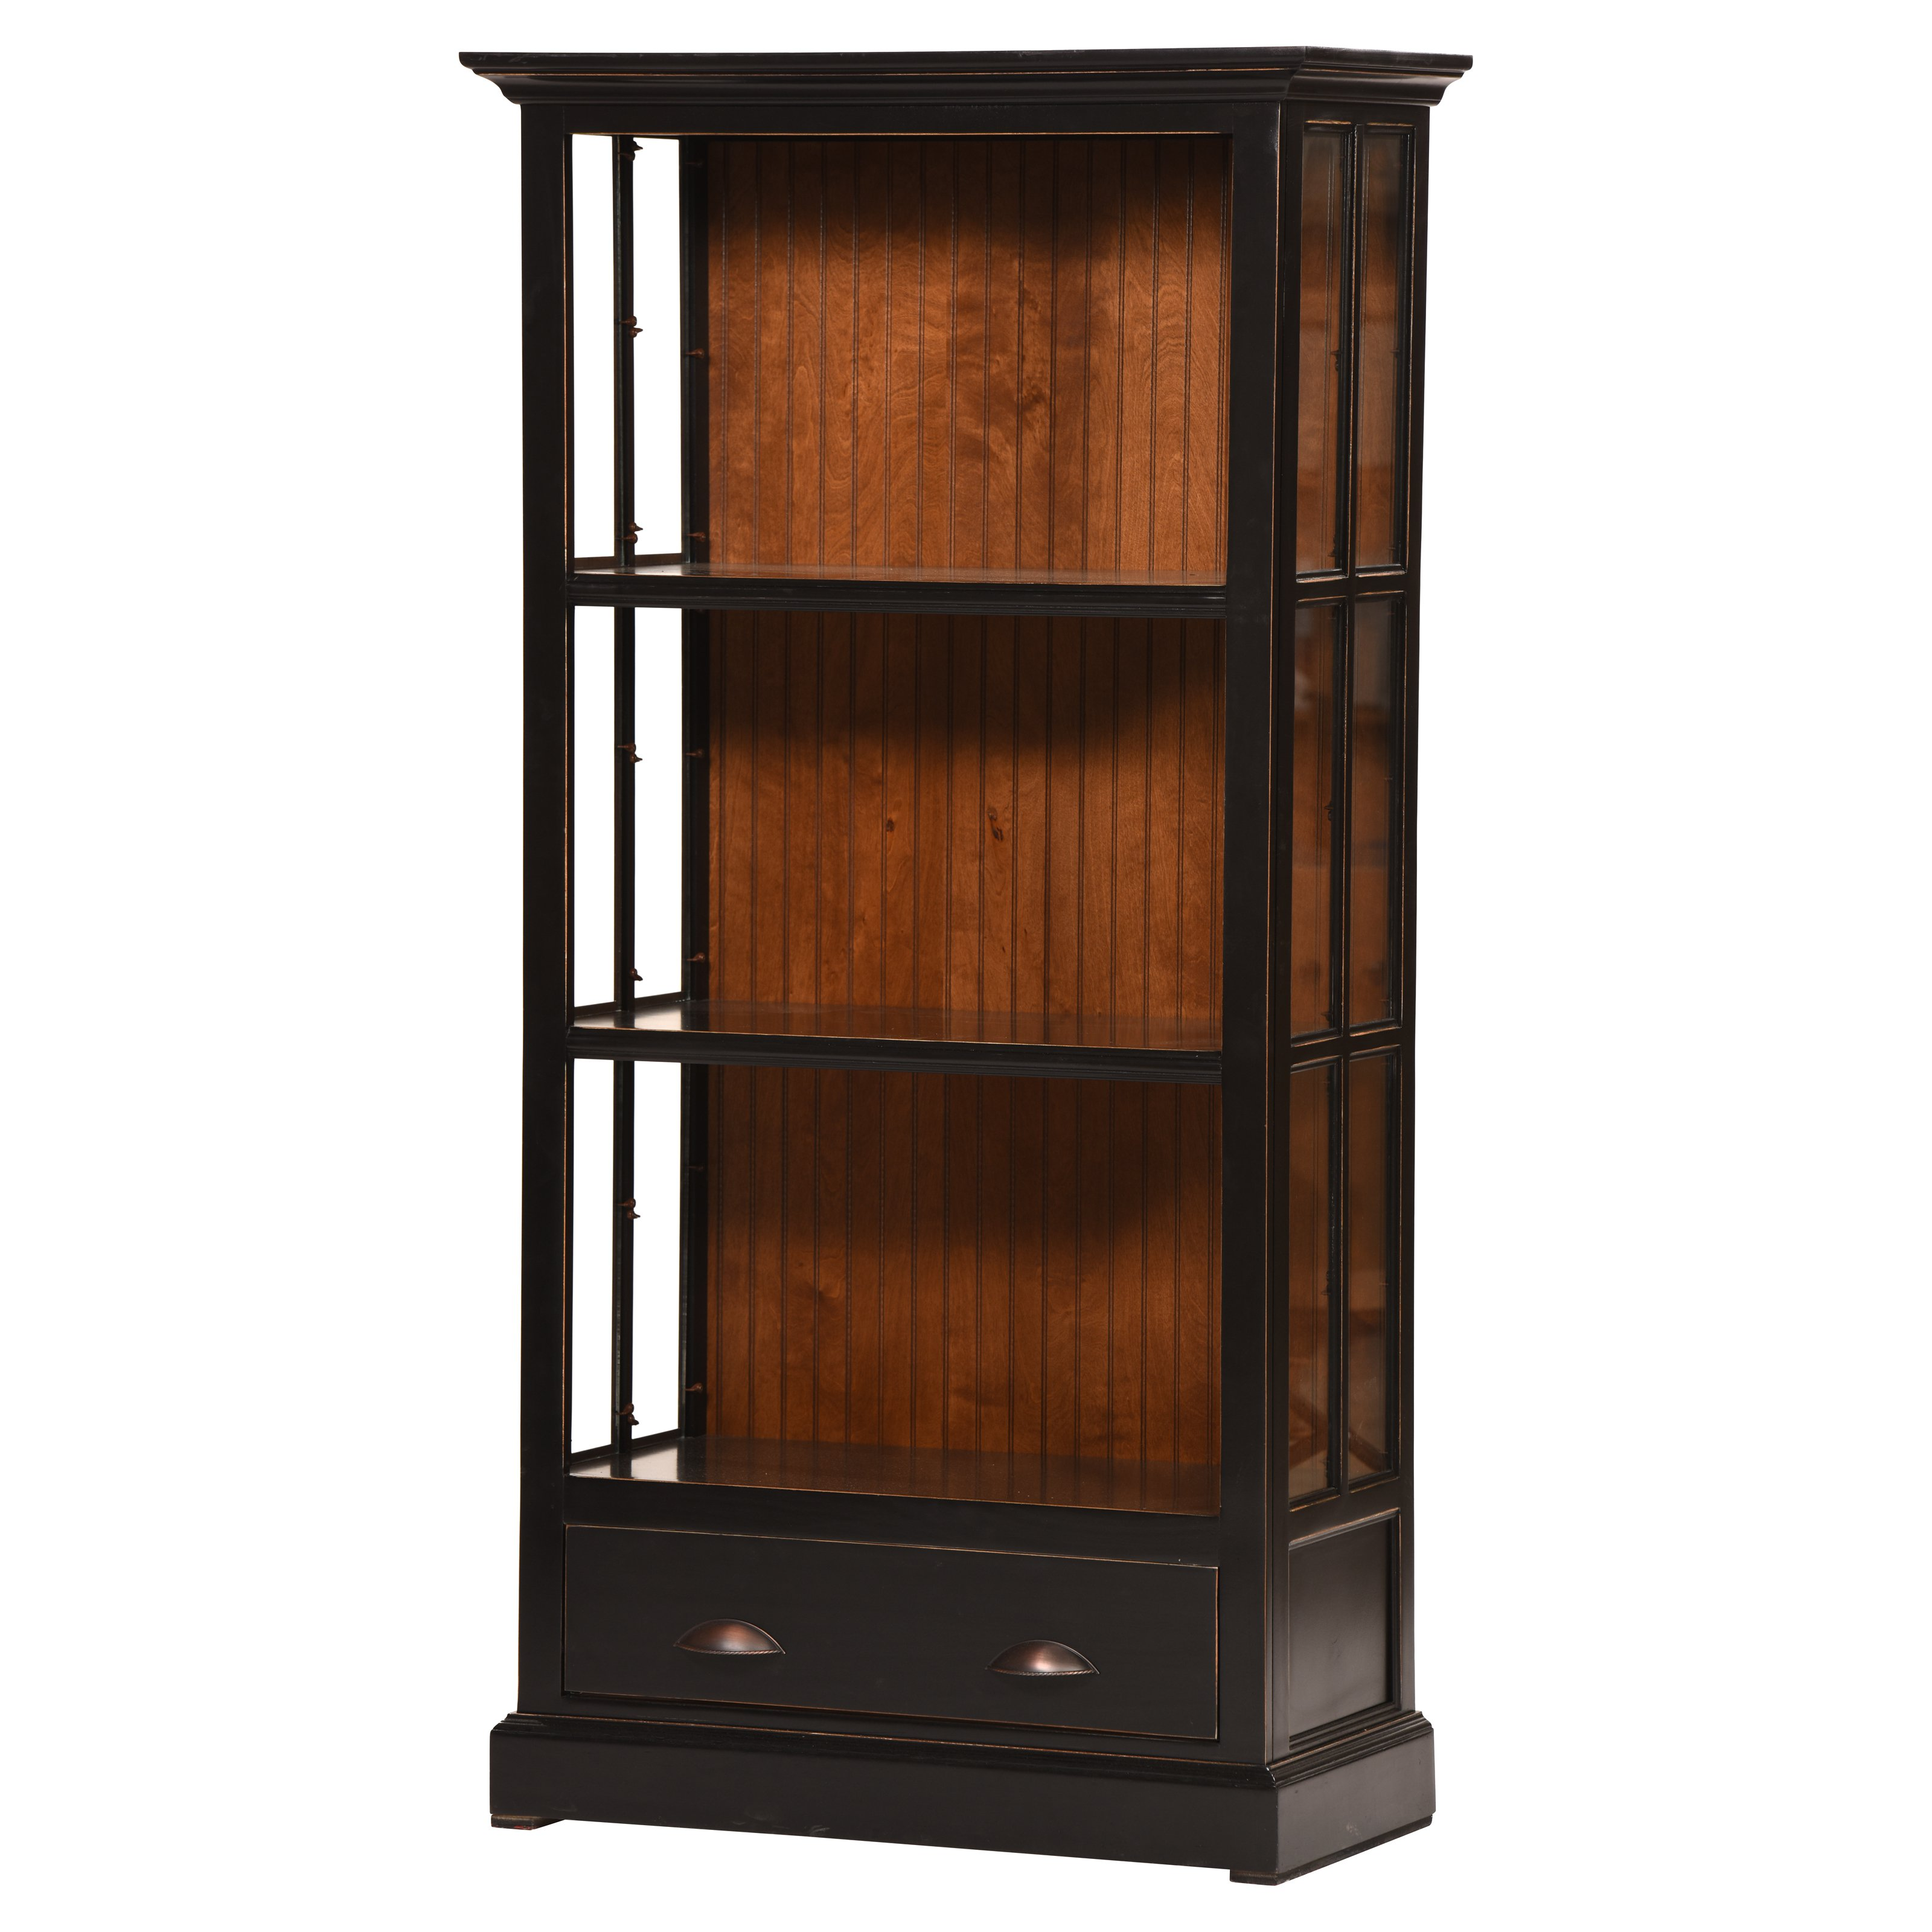 Eagle Furniture West Winds 36 in. Bookcase with Drawer